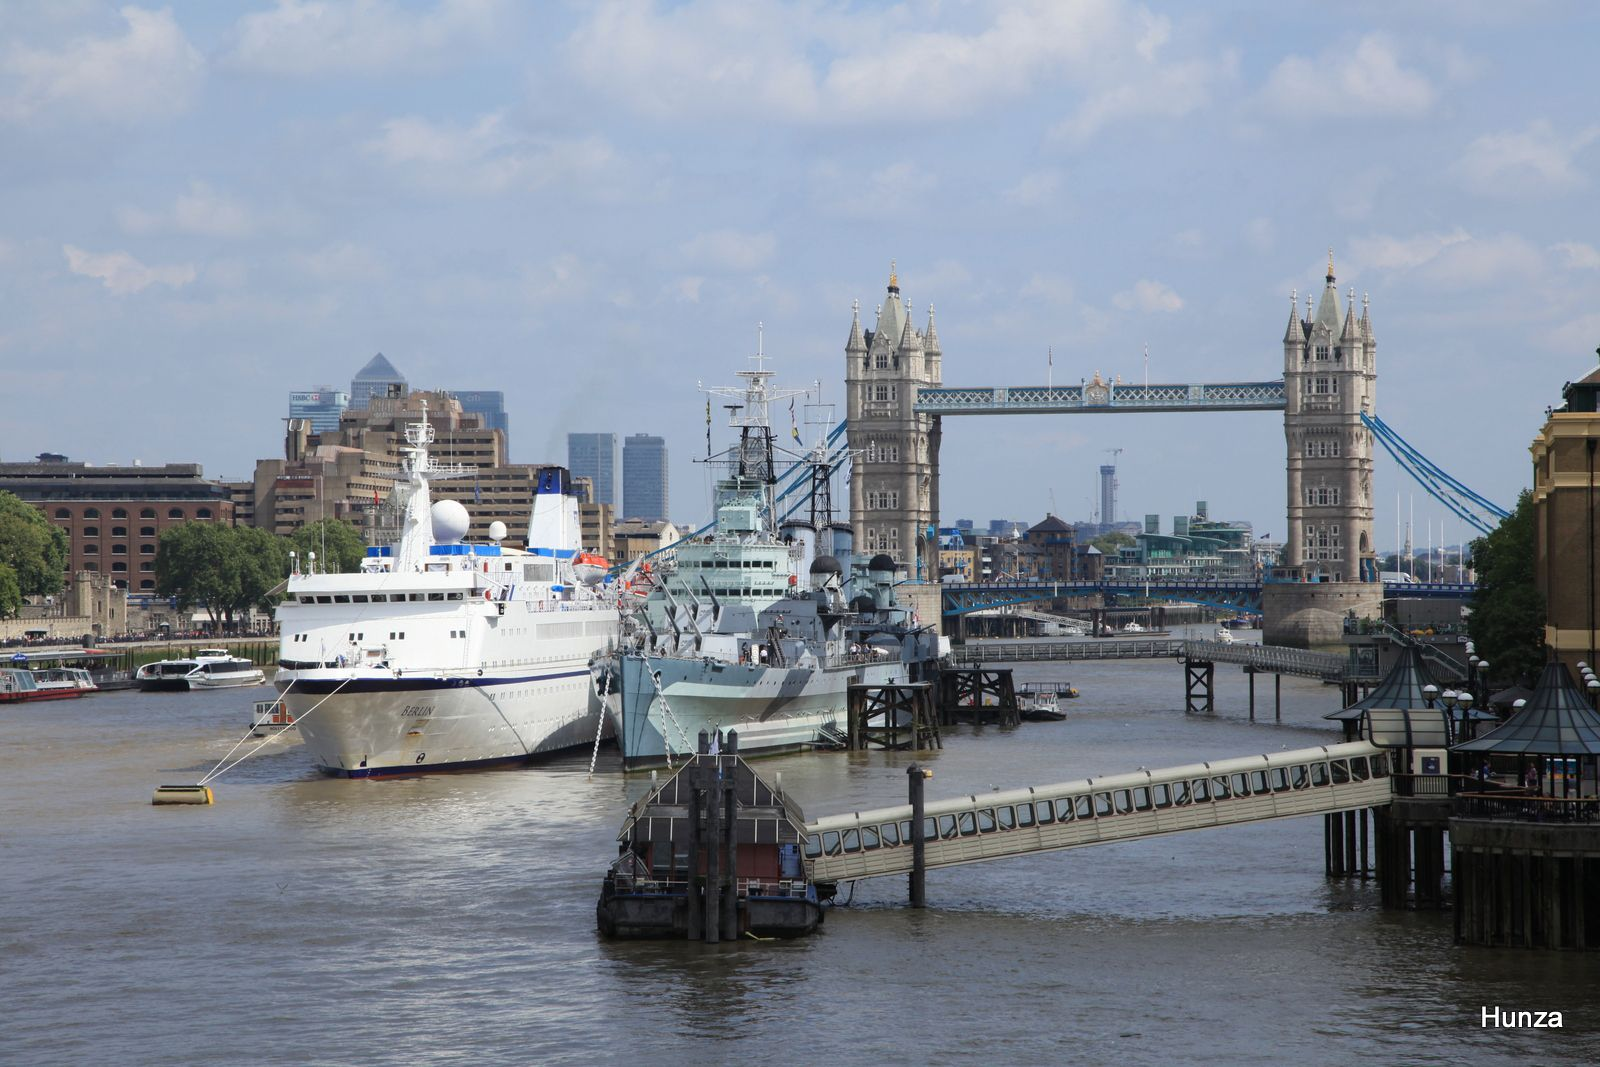 Le cuirassé HSM Belfast et le Tower Bridge vus depuis le London Bridge